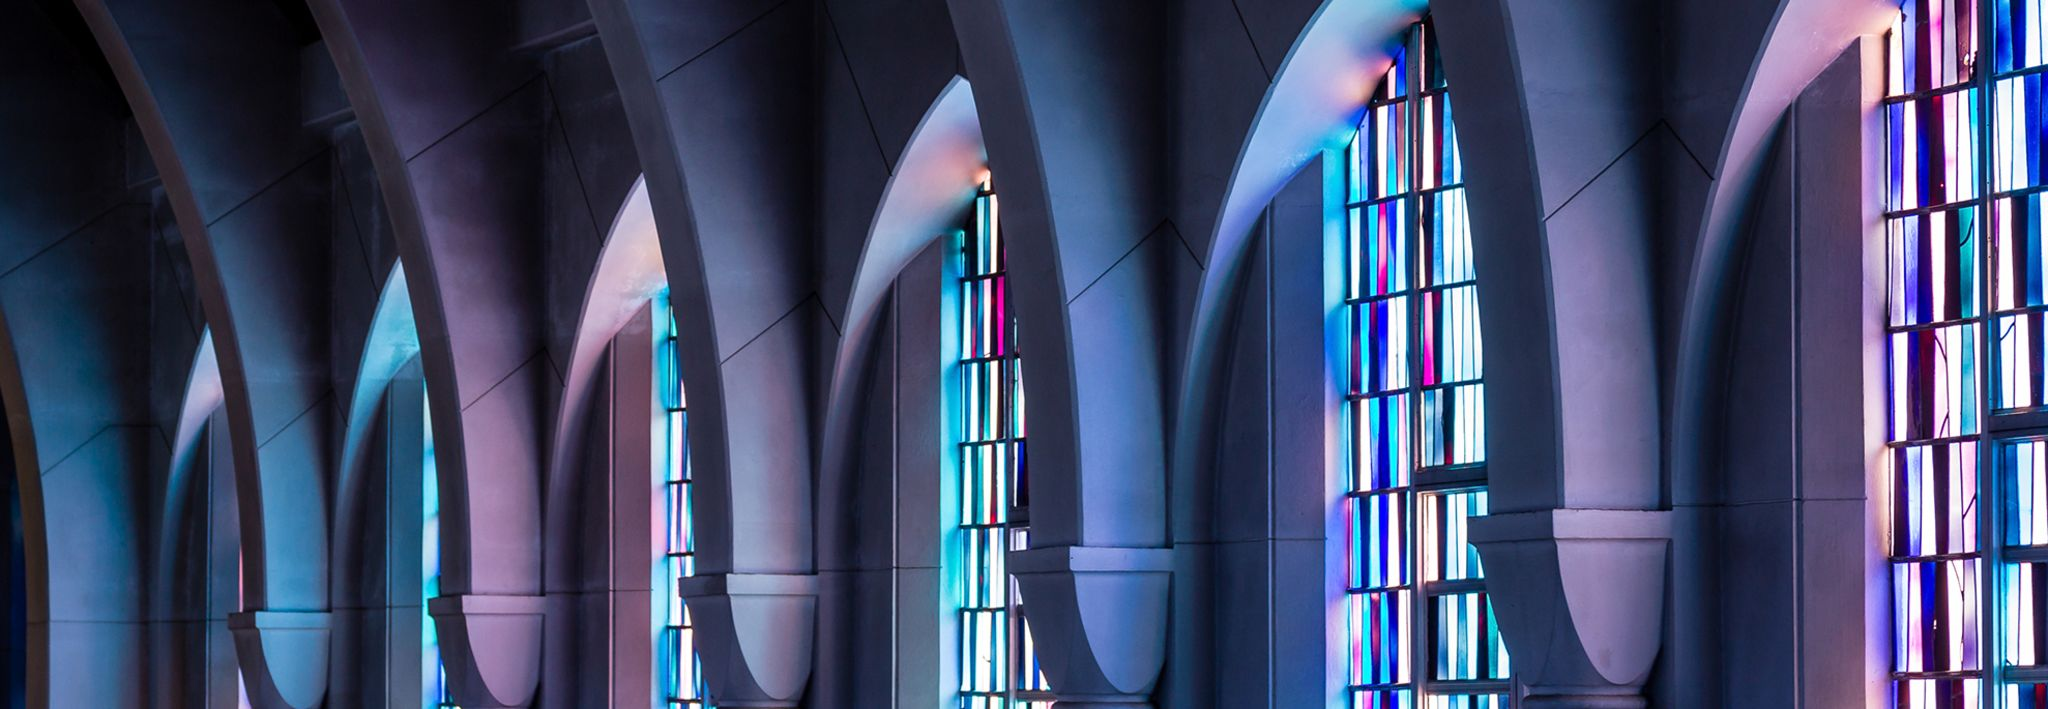 Church has purple and blue stained glass.